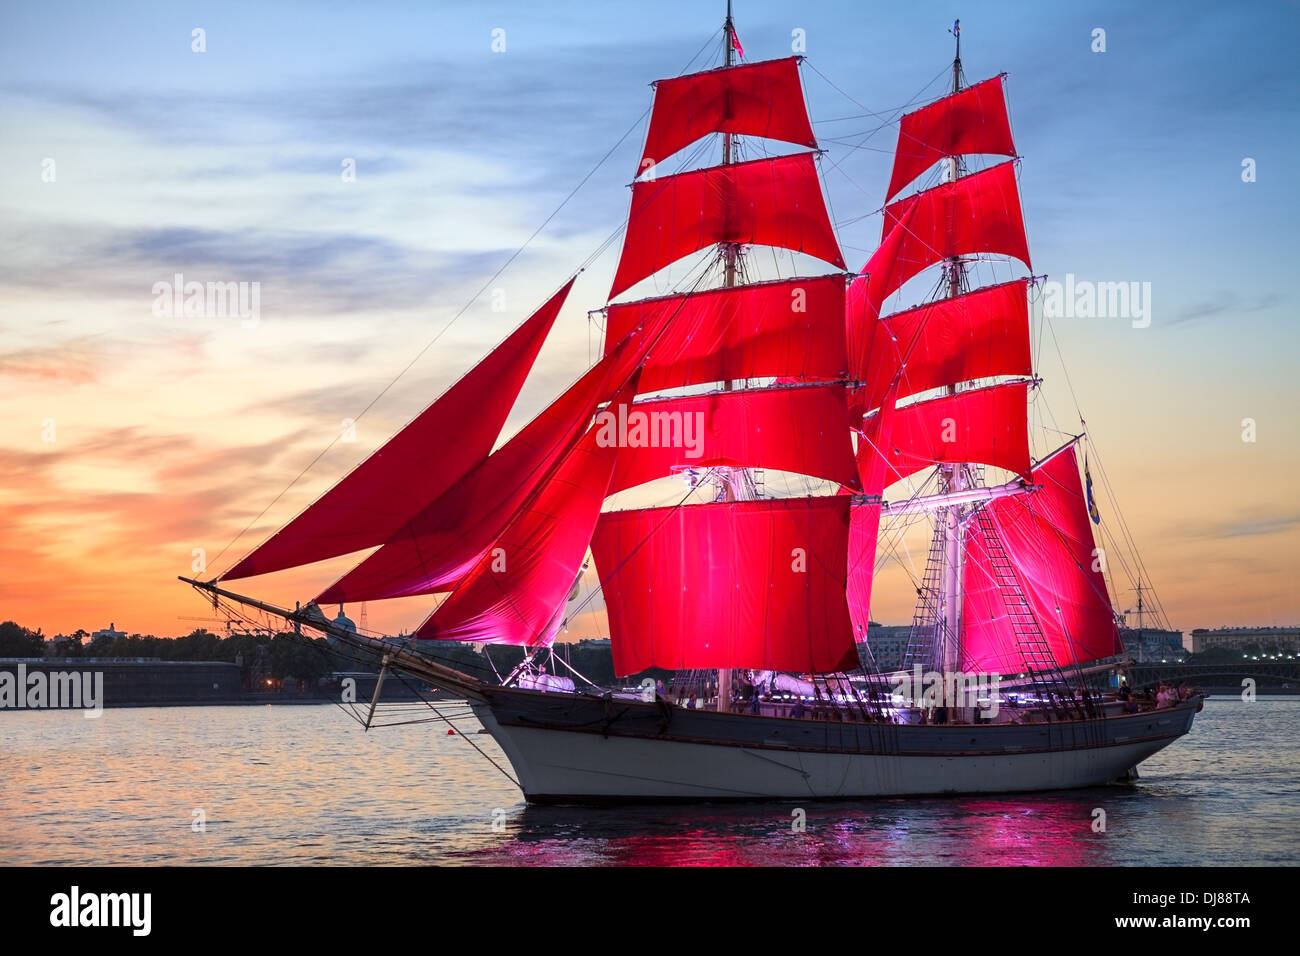 Celebration Scarlet Sails show during the White Nights Festival, St. Petersburg, Russia. Ship over sunset sky - Stock Image